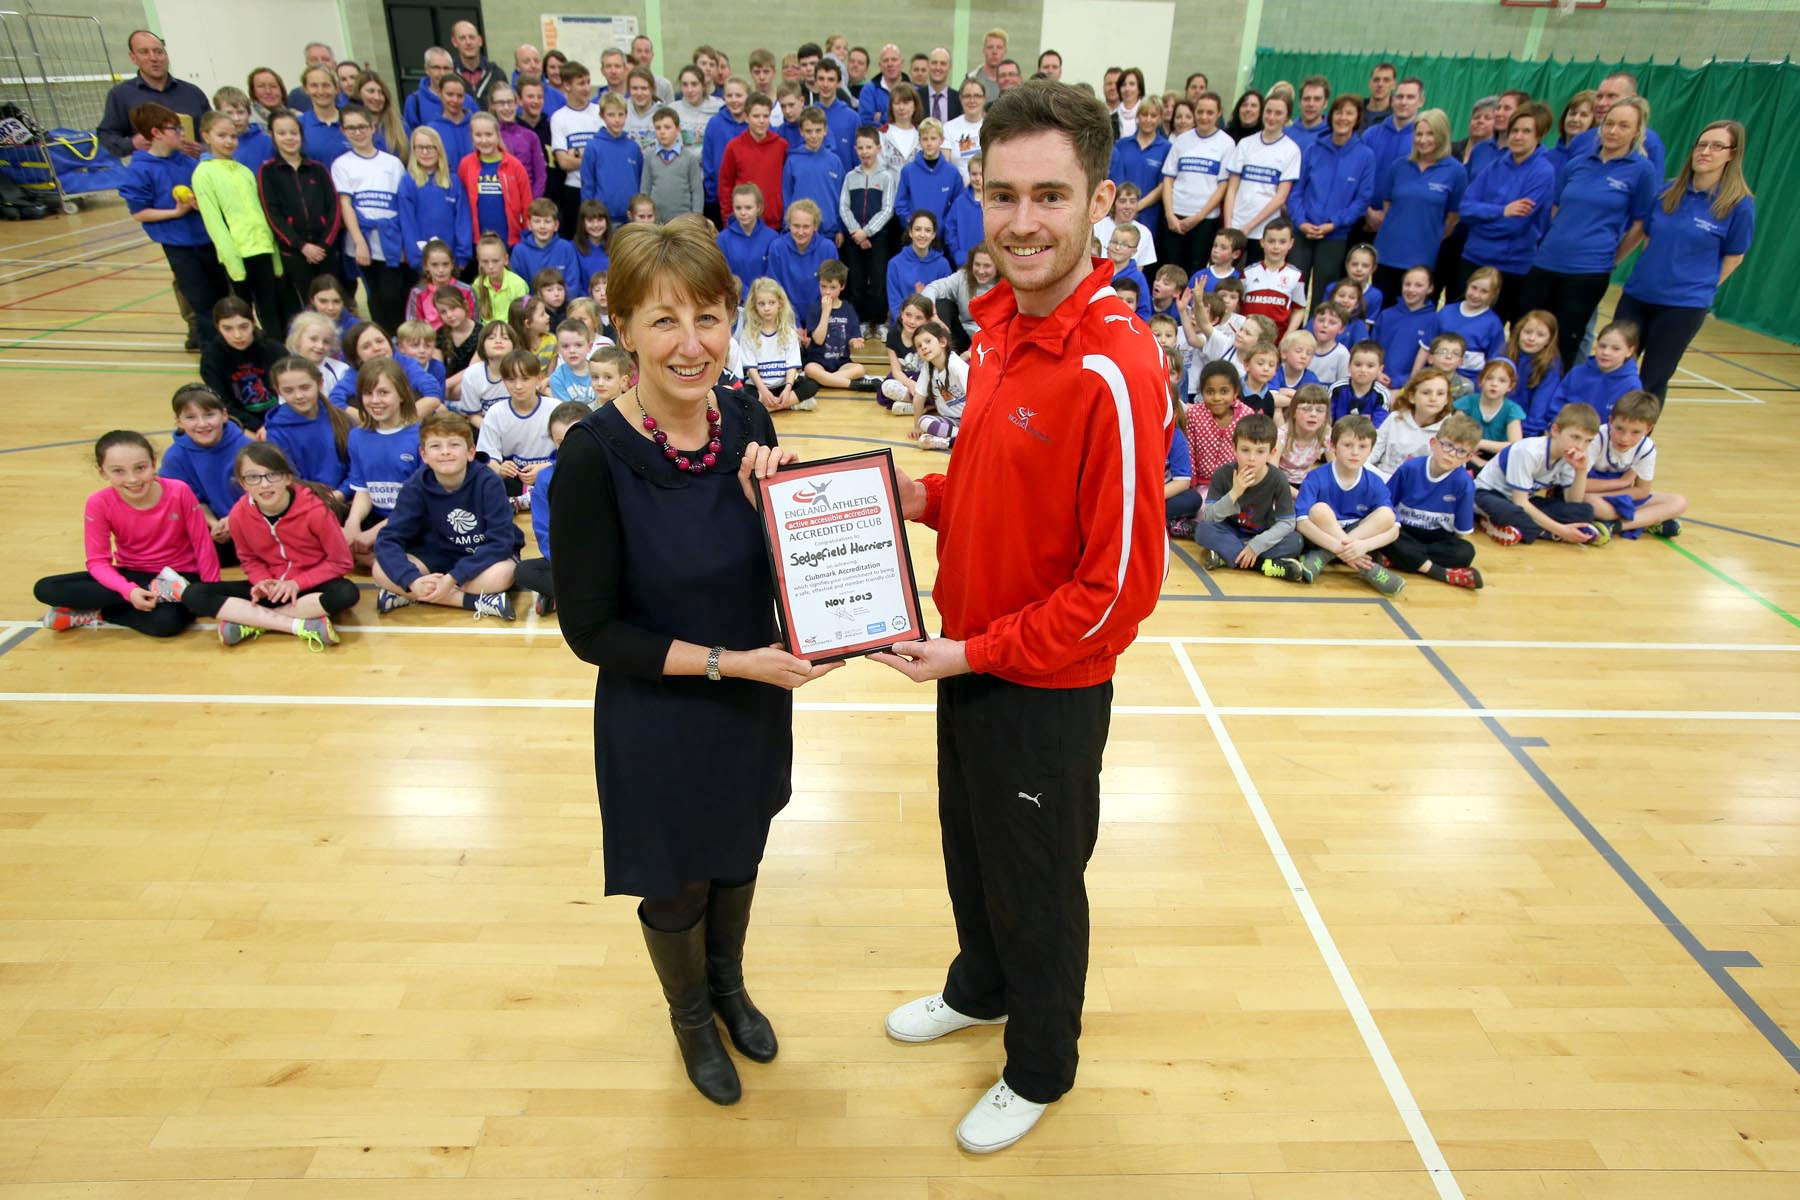 OFFICIAL RECOGNITION: Helen Letts, Sedgefield Harriers Club Mark co-ordinator, and John Stacey, club and coach s